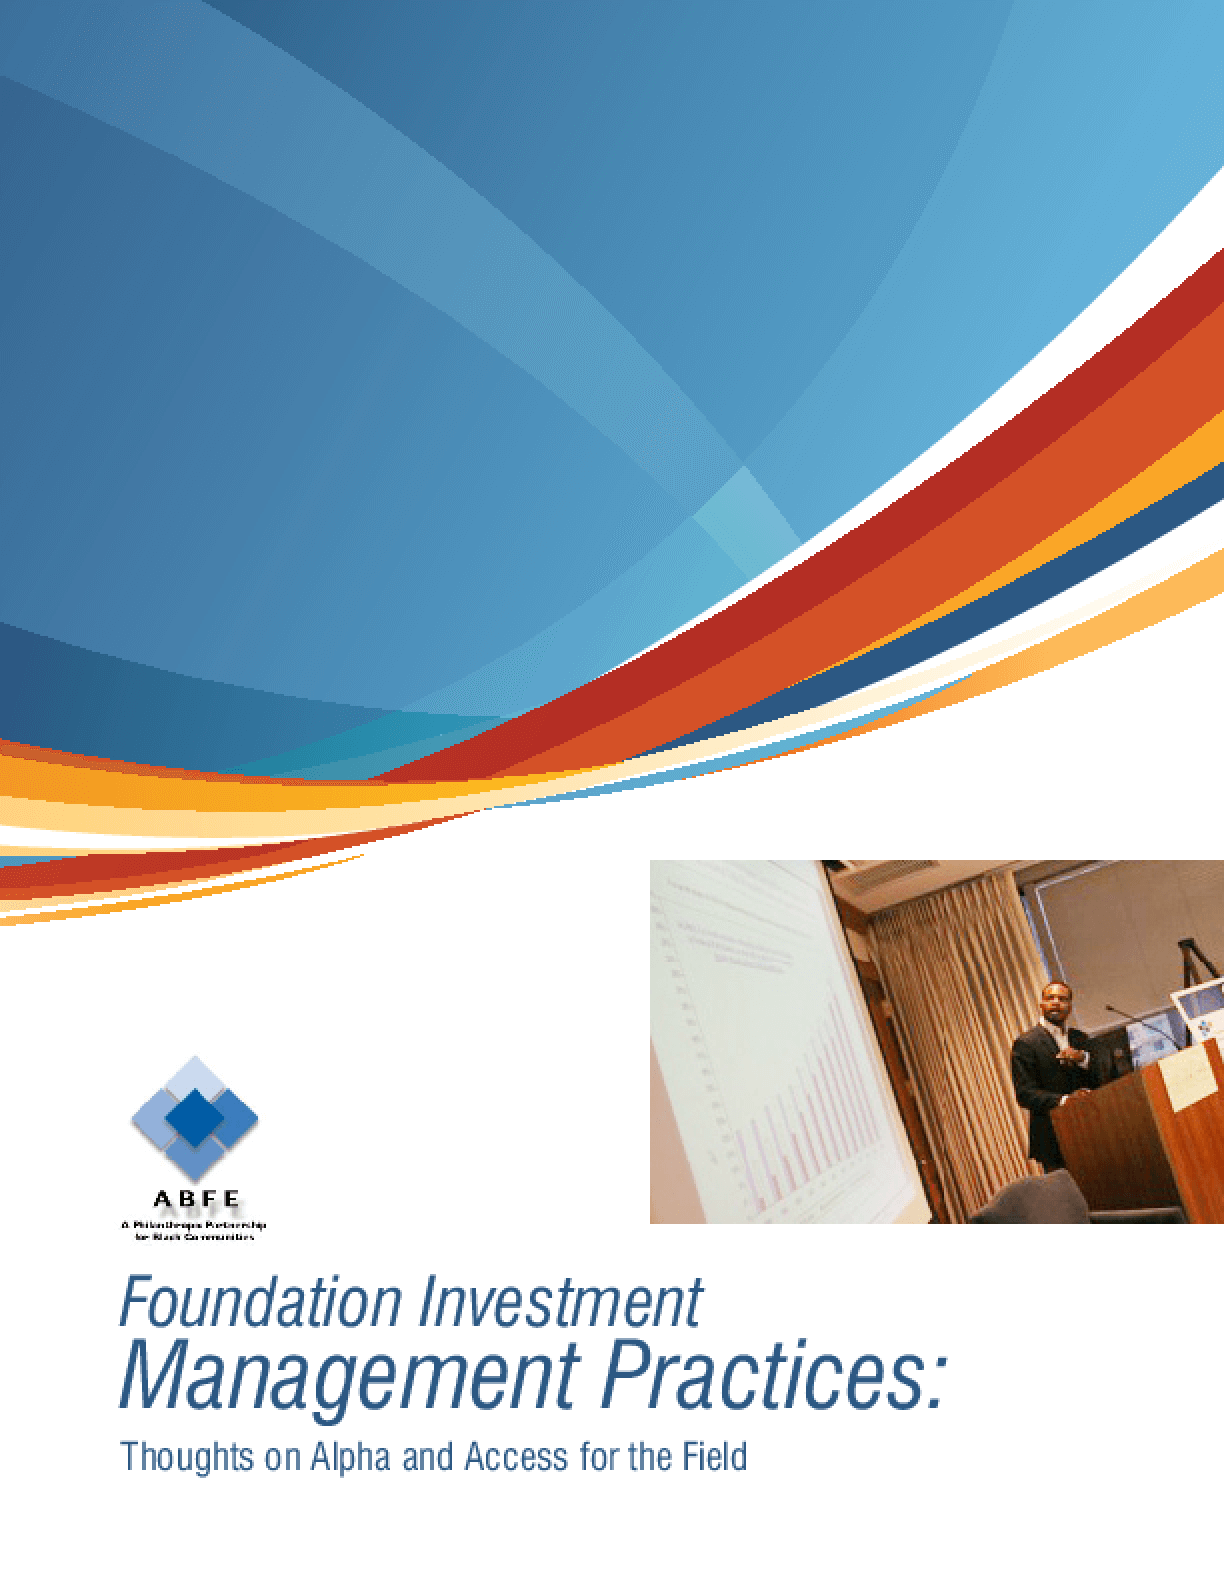 Foundation Investment Management Practices: Thoughts on Alpha and Access for the Field